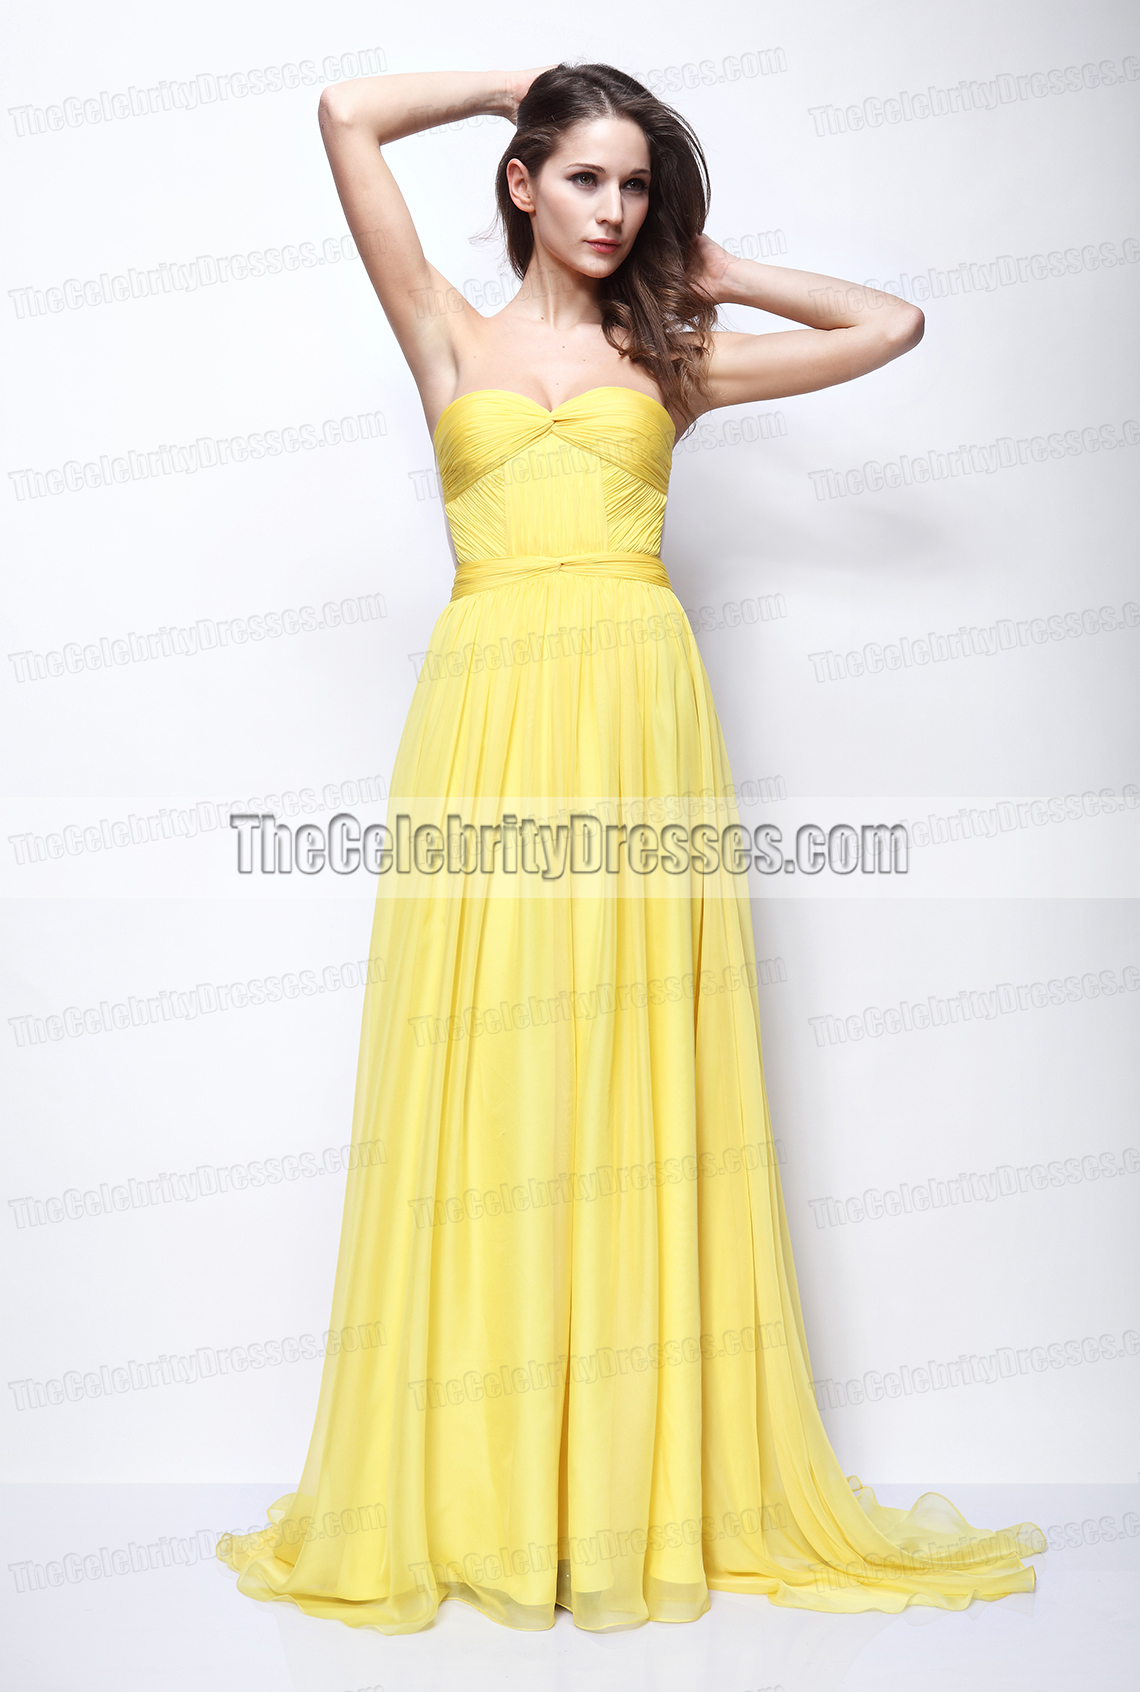 ad6afbcc0d Vanessa Hudgens Yellow Strapless Prom Gown Formal Dress Journey 2 Premiere  - TheCelebrityDresses